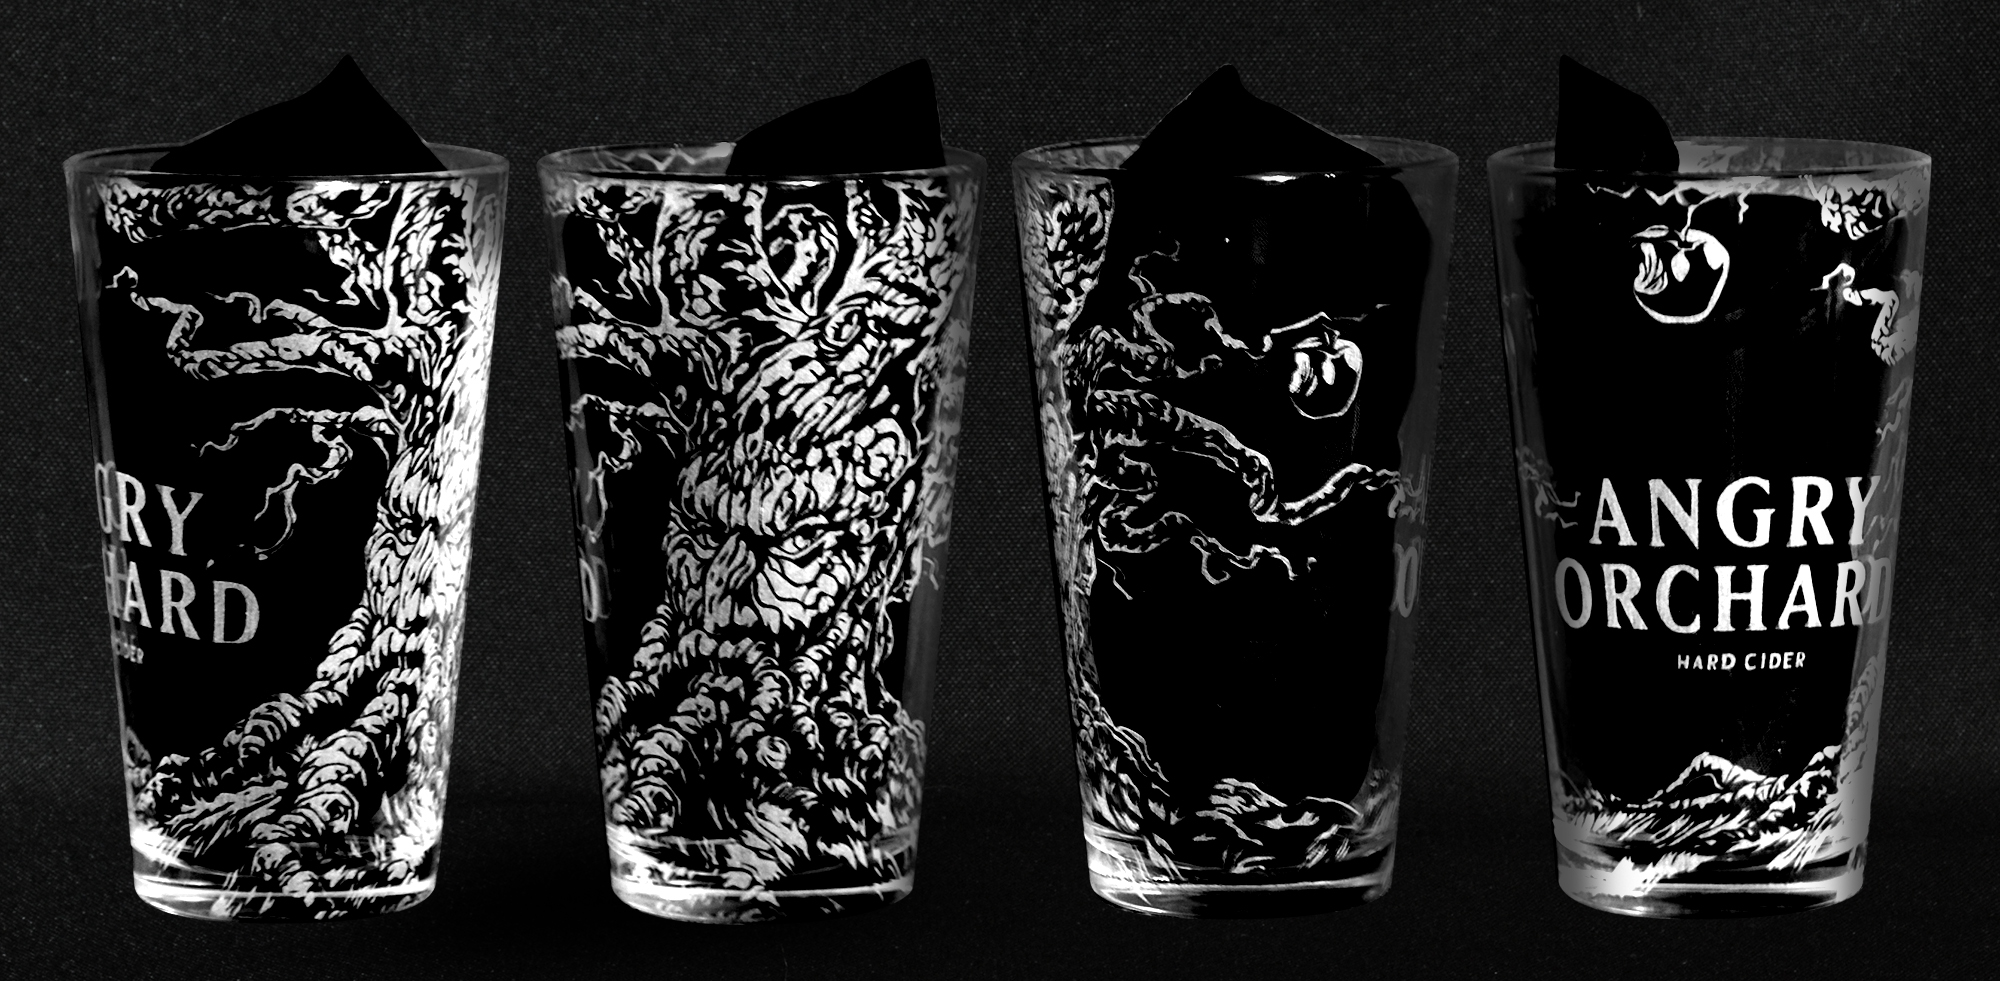 Once the design work is complete, the template goes into the laser and it will engrave the design we have completed for you.This image is not a render approximation, it is an actual glass that was photographed. Most customers note how much more amazing the glasses look in person as the photos can never quite do them justice.